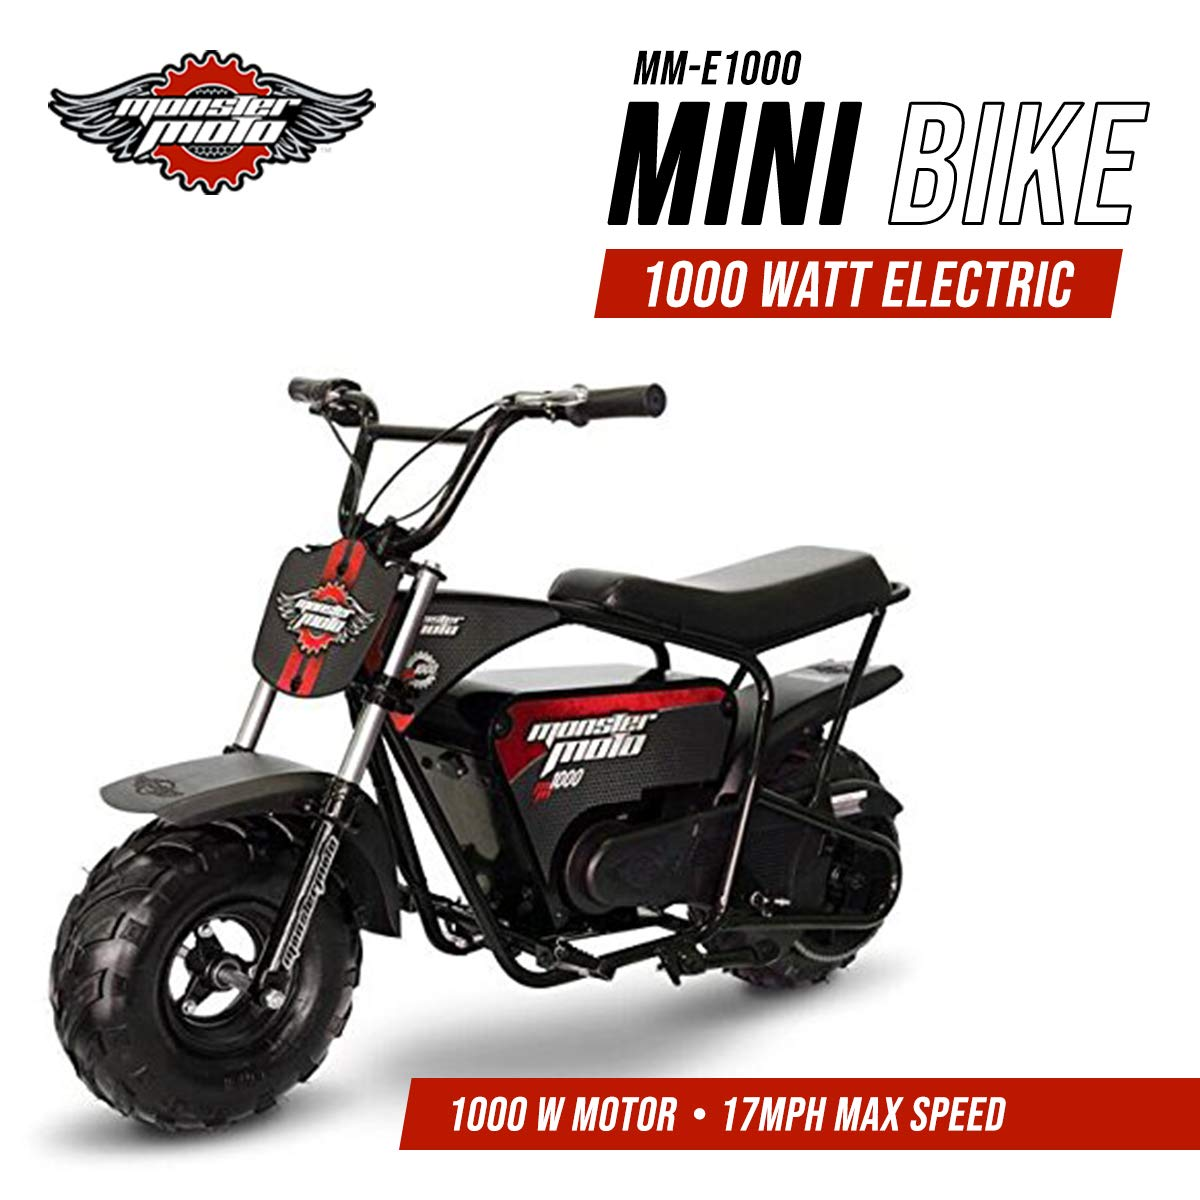 Monster Moto Mm E1000 Brm Electric Mini Bike With Mag Rocket Rims Plug Wiring Diagram Wheels Assembled In The Usa 1000 Watt Black Automotive